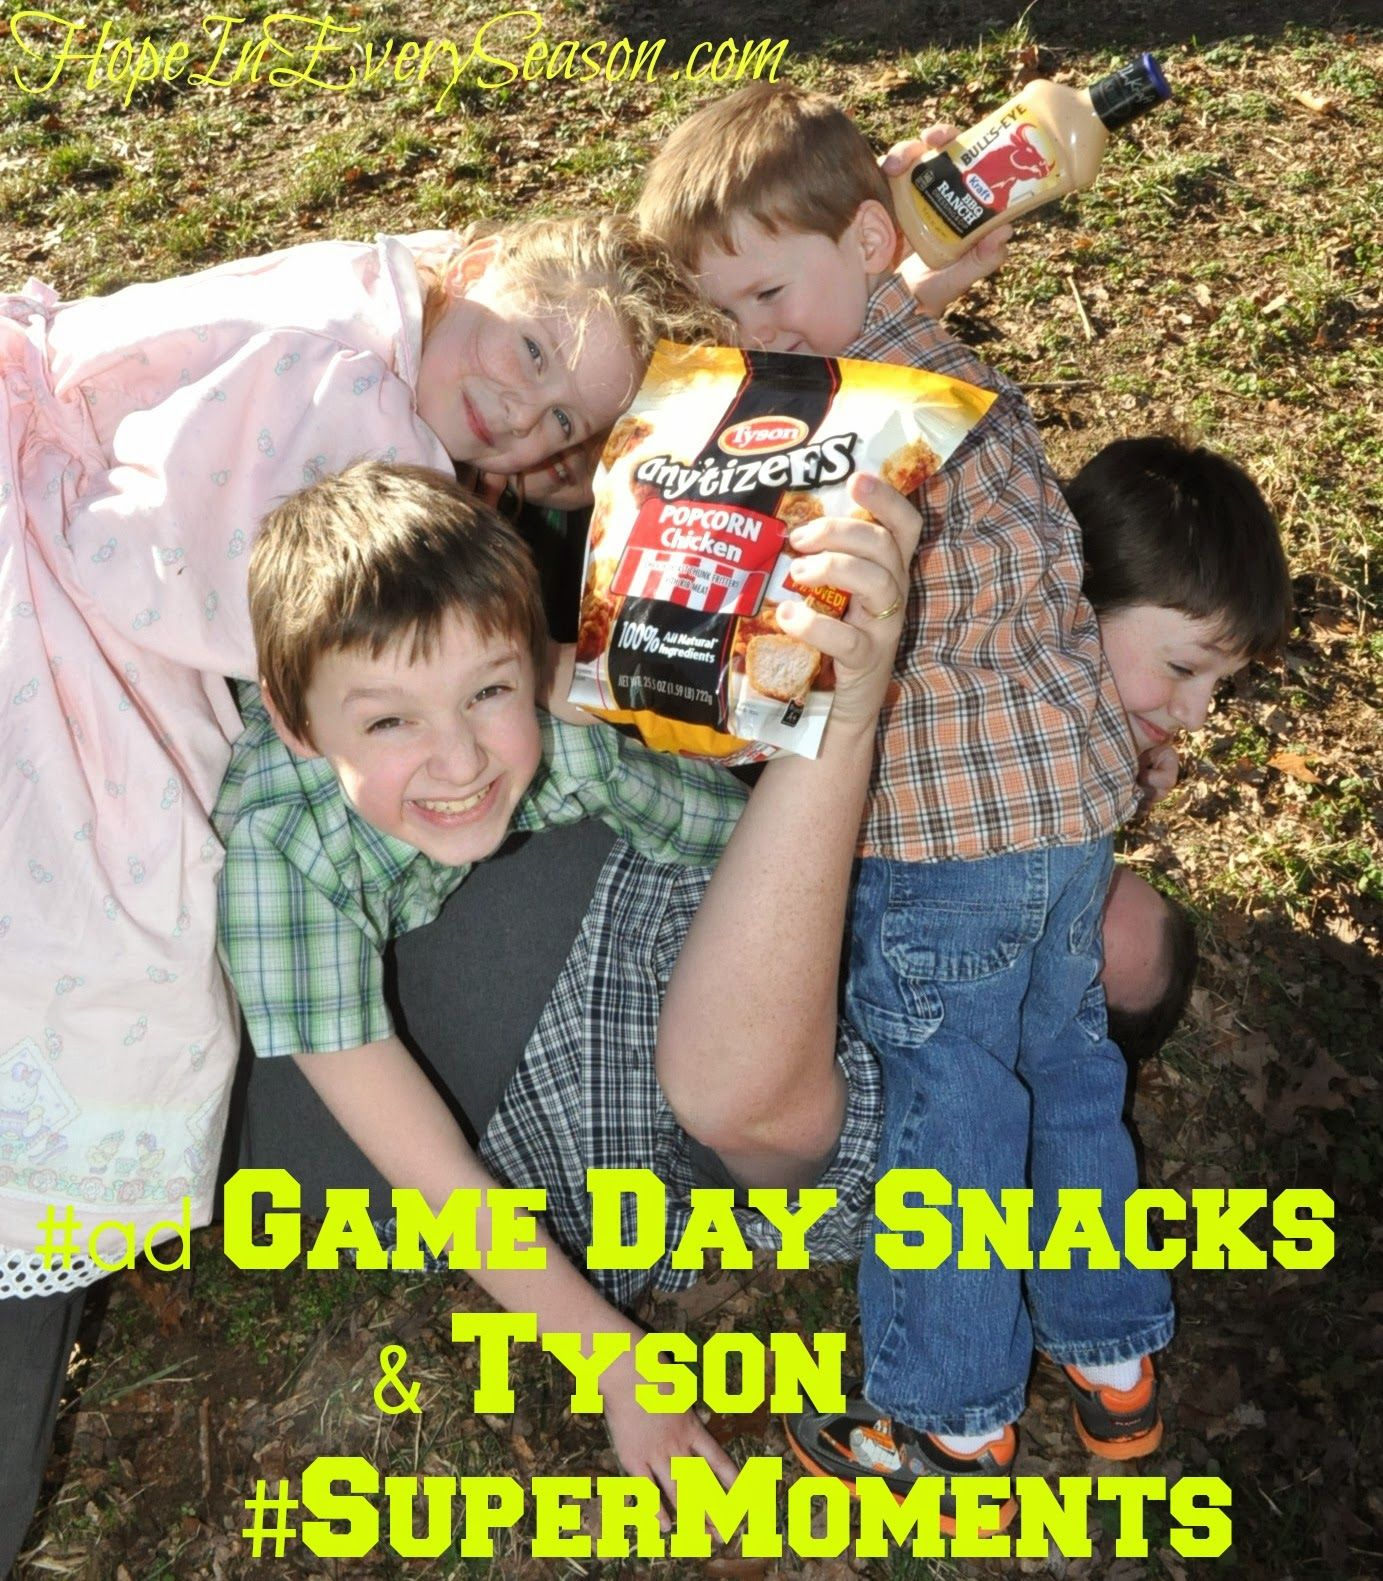 #ad Game Day Snacks & Tyson #SuperMoments #cbias Super Bowl snacks